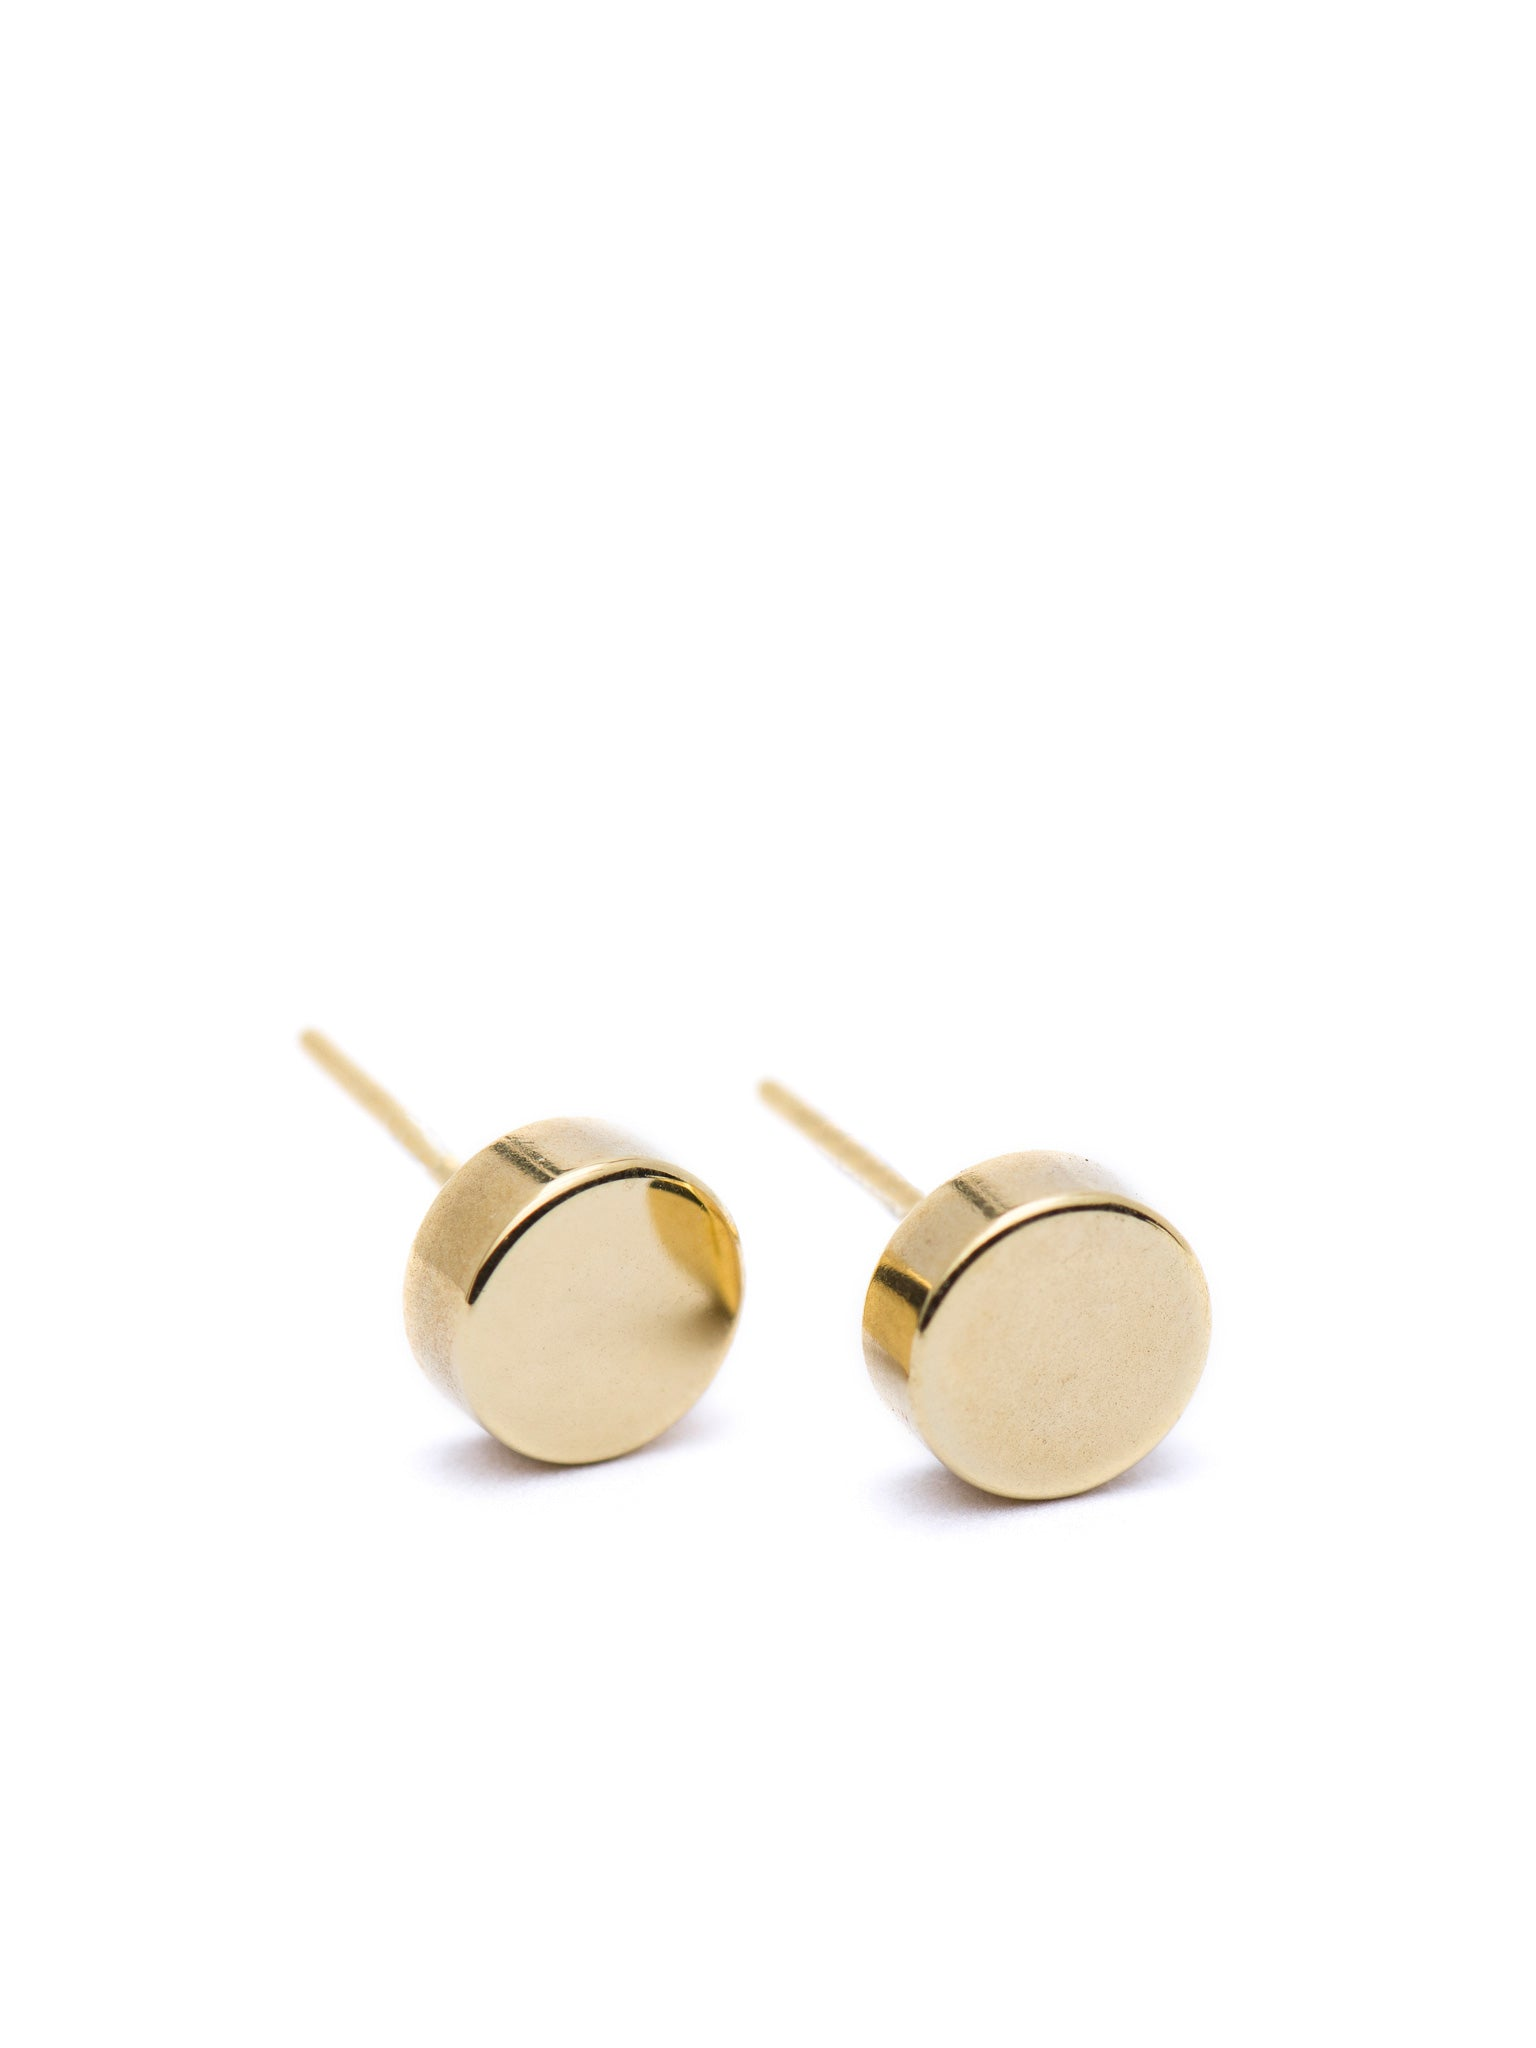 CIRCLE LINES - Small disk earrings